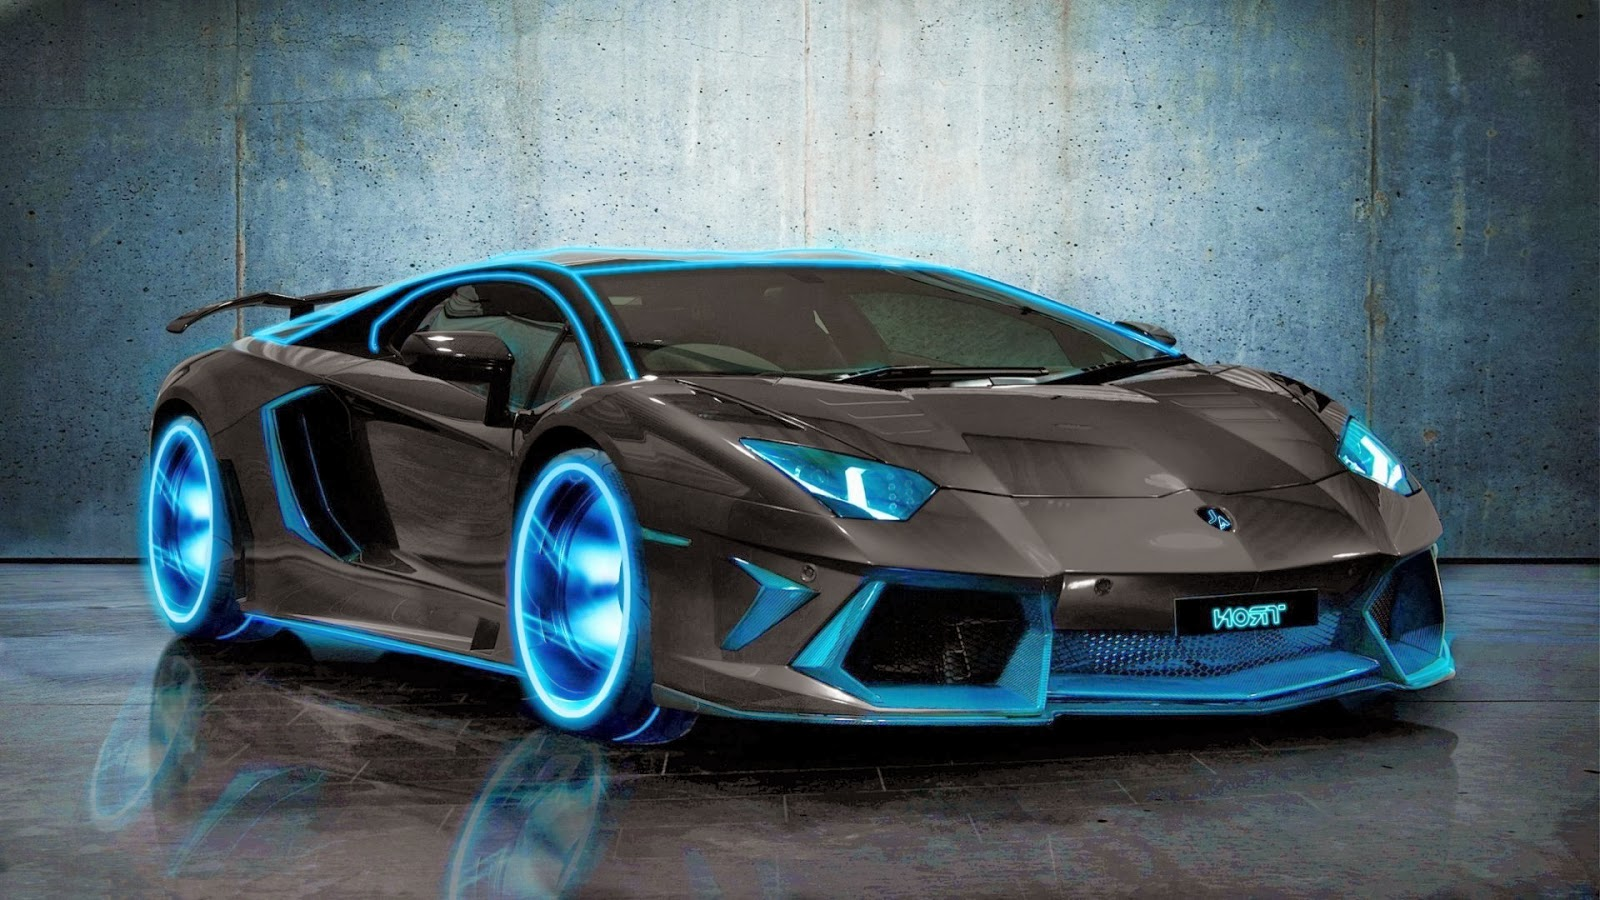 Colorful Lamborghini Wallpapers Posted By John Peltier